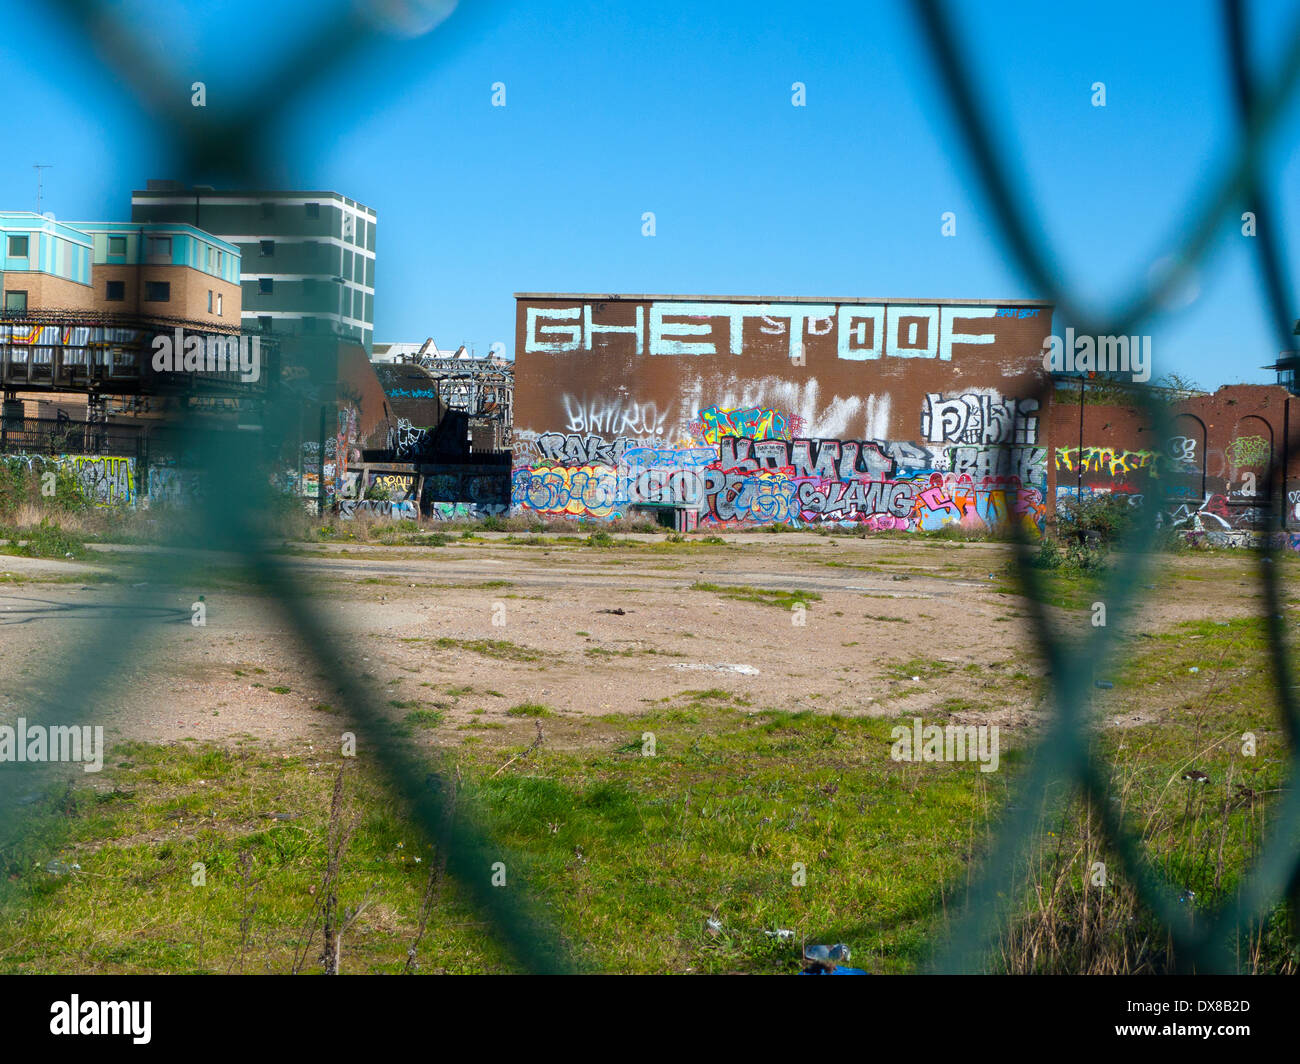 Graffiti on the side of a building viewed through fence by wasteland by Pedley Street Brick Lane E1 London UK KATHY DEWITT - Stock Image